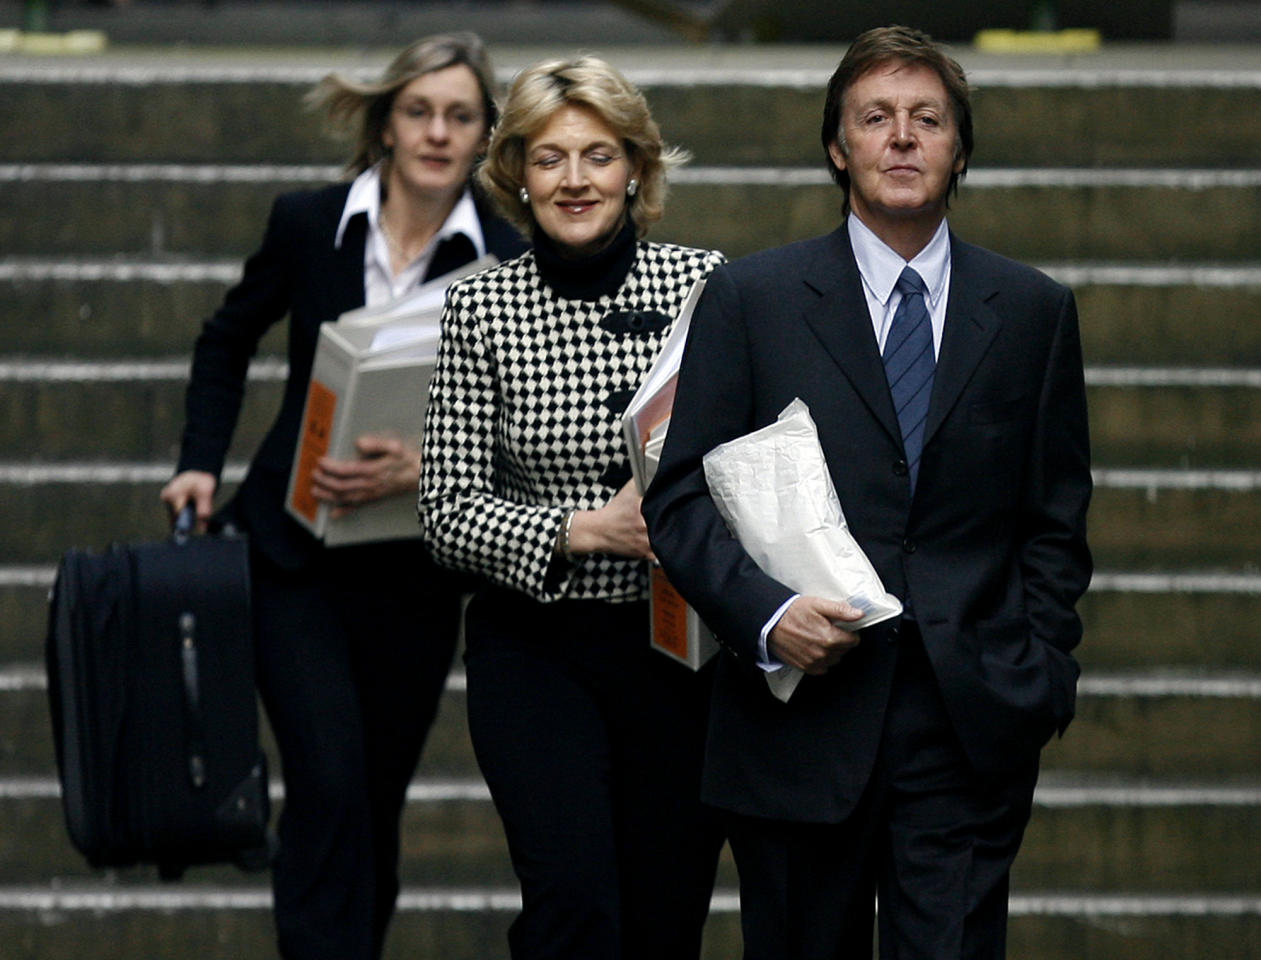 FILE - In this Tuesday, Feb. 12, 2008 file photo, Paul McCartney, right, arrives at the High Court in London after a lunch break in his divorce settlement hearing. Paul McCartney and Heather Mills were in court to reach a financial settlement in their acrimonious, high stakes divorce. McCartney turned 70 years of age Monday June 18, 2012. (AP Photo/Simon Dawson, File)